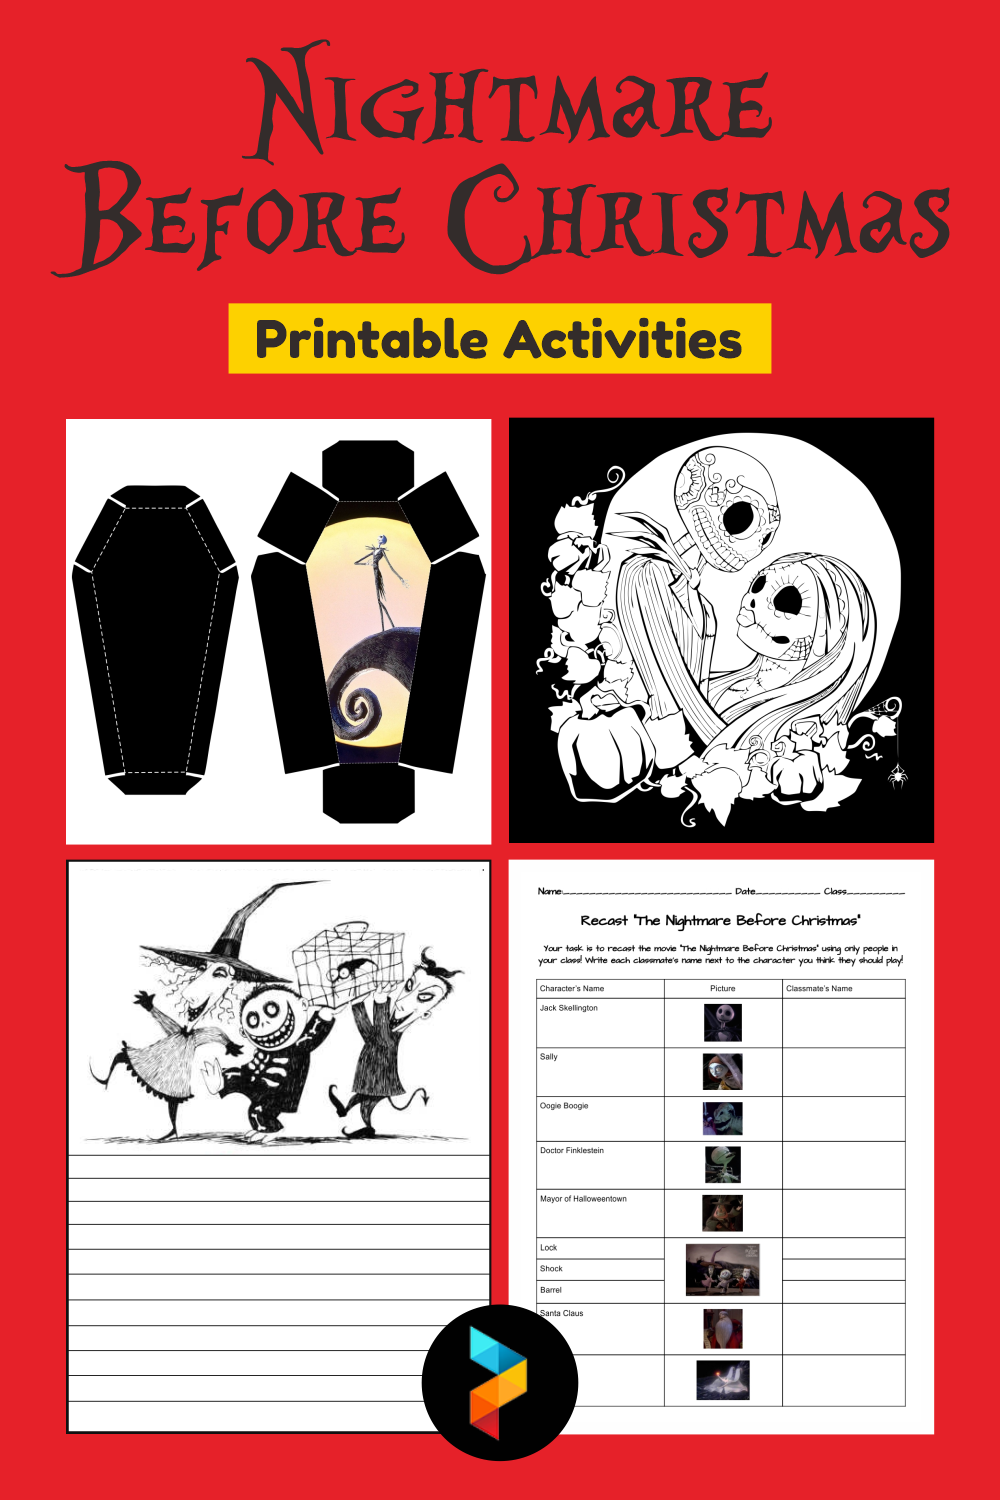 Nightmare Before Christmas Printable Activities